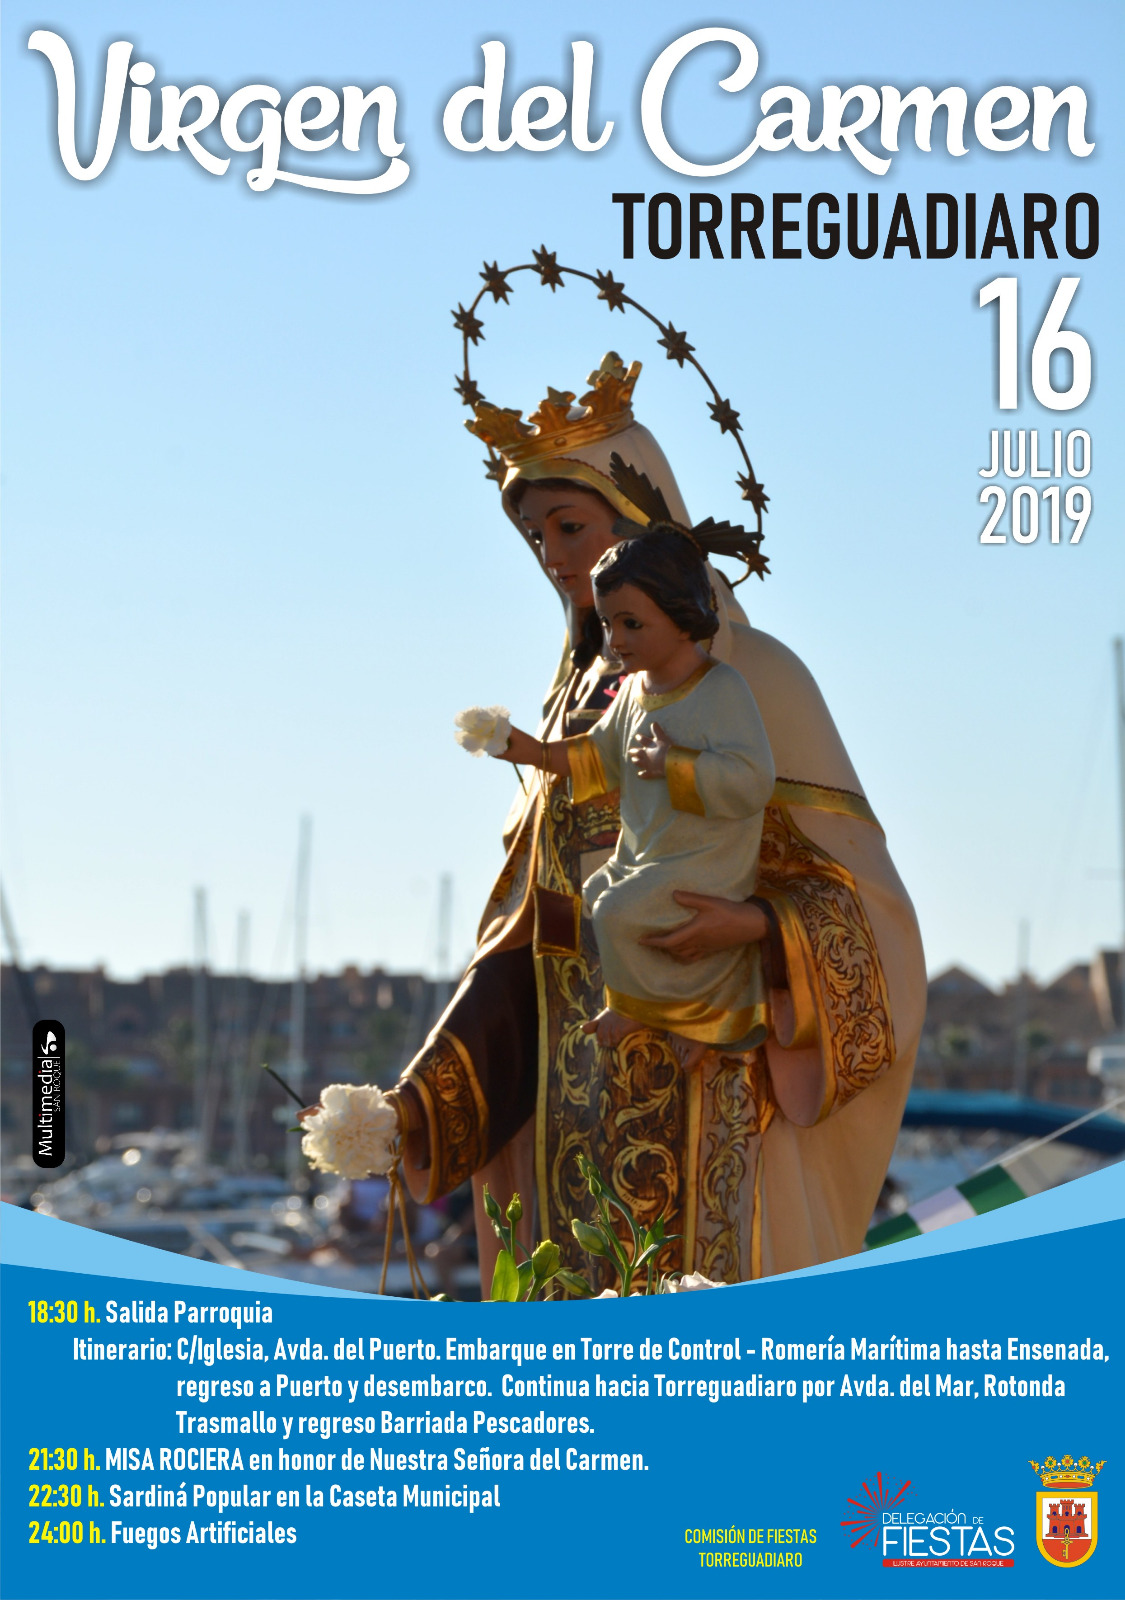 sites/default/files/2019_AGENDA/ferias y fiestas/san-roque/torreguadiaro-virgen-del-carmen.jpeg